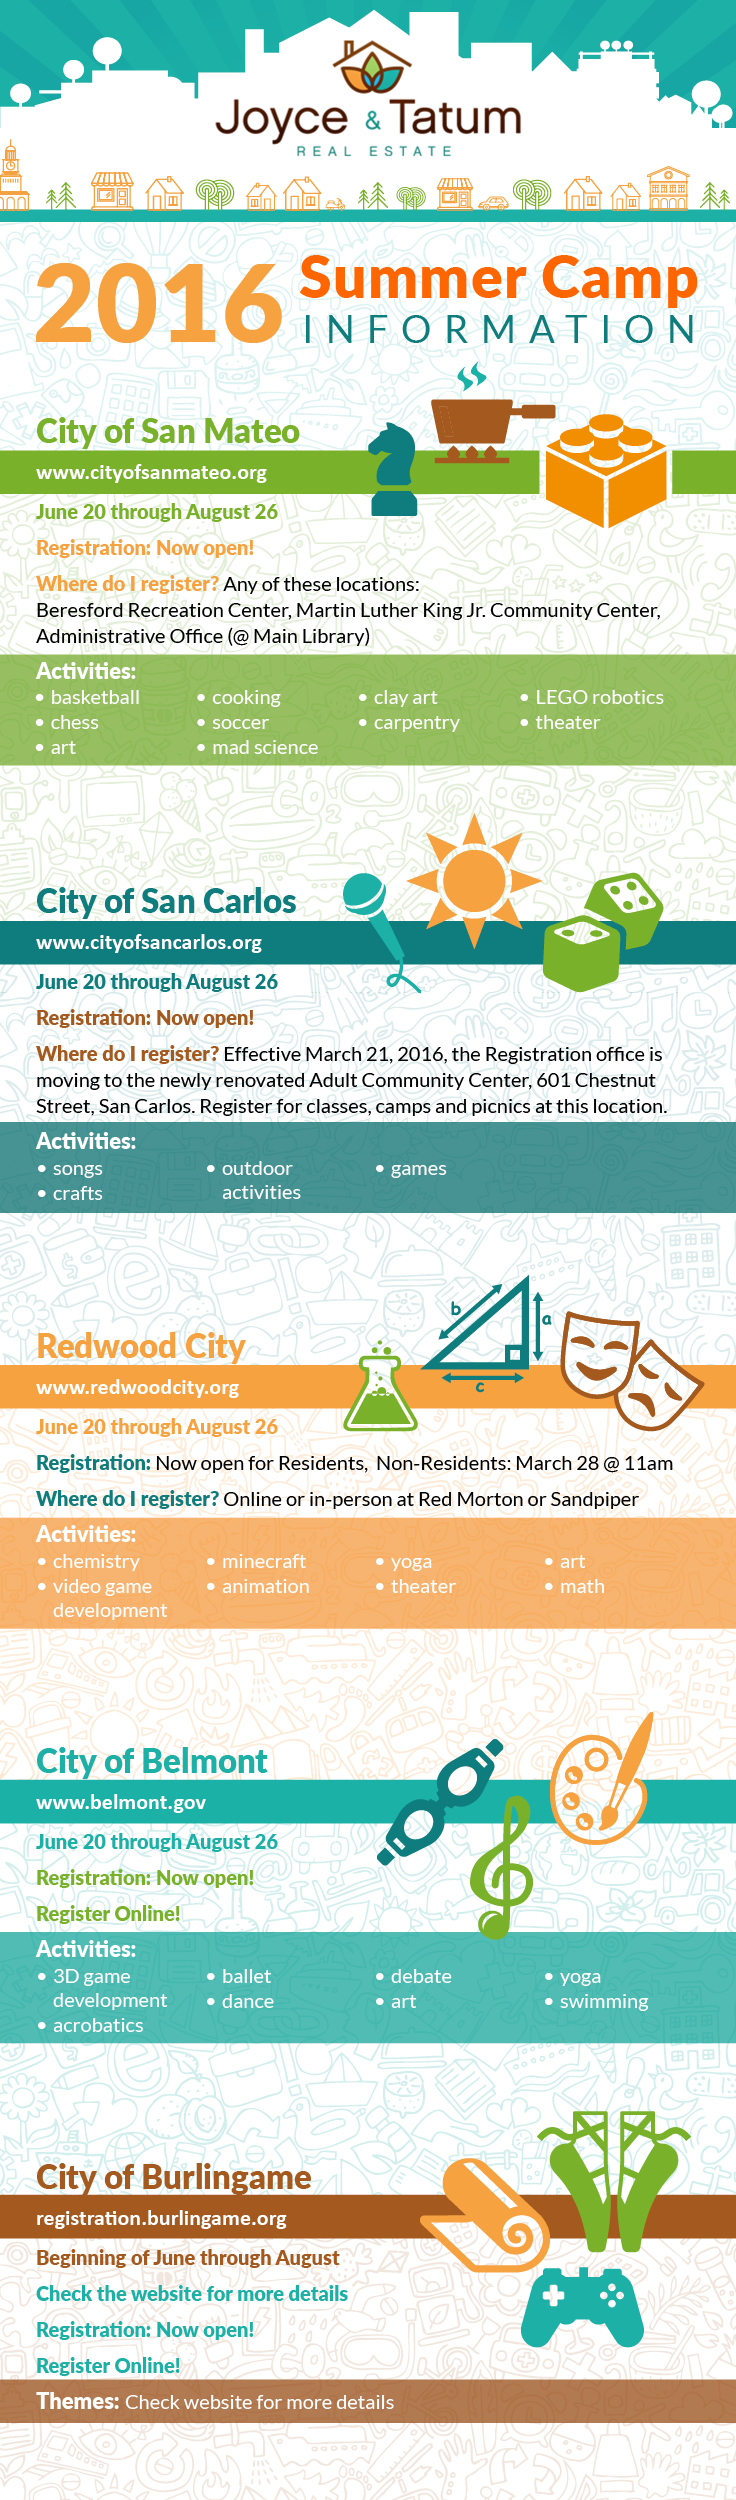 Summer-Camp-California-Bay-Area-Infographic